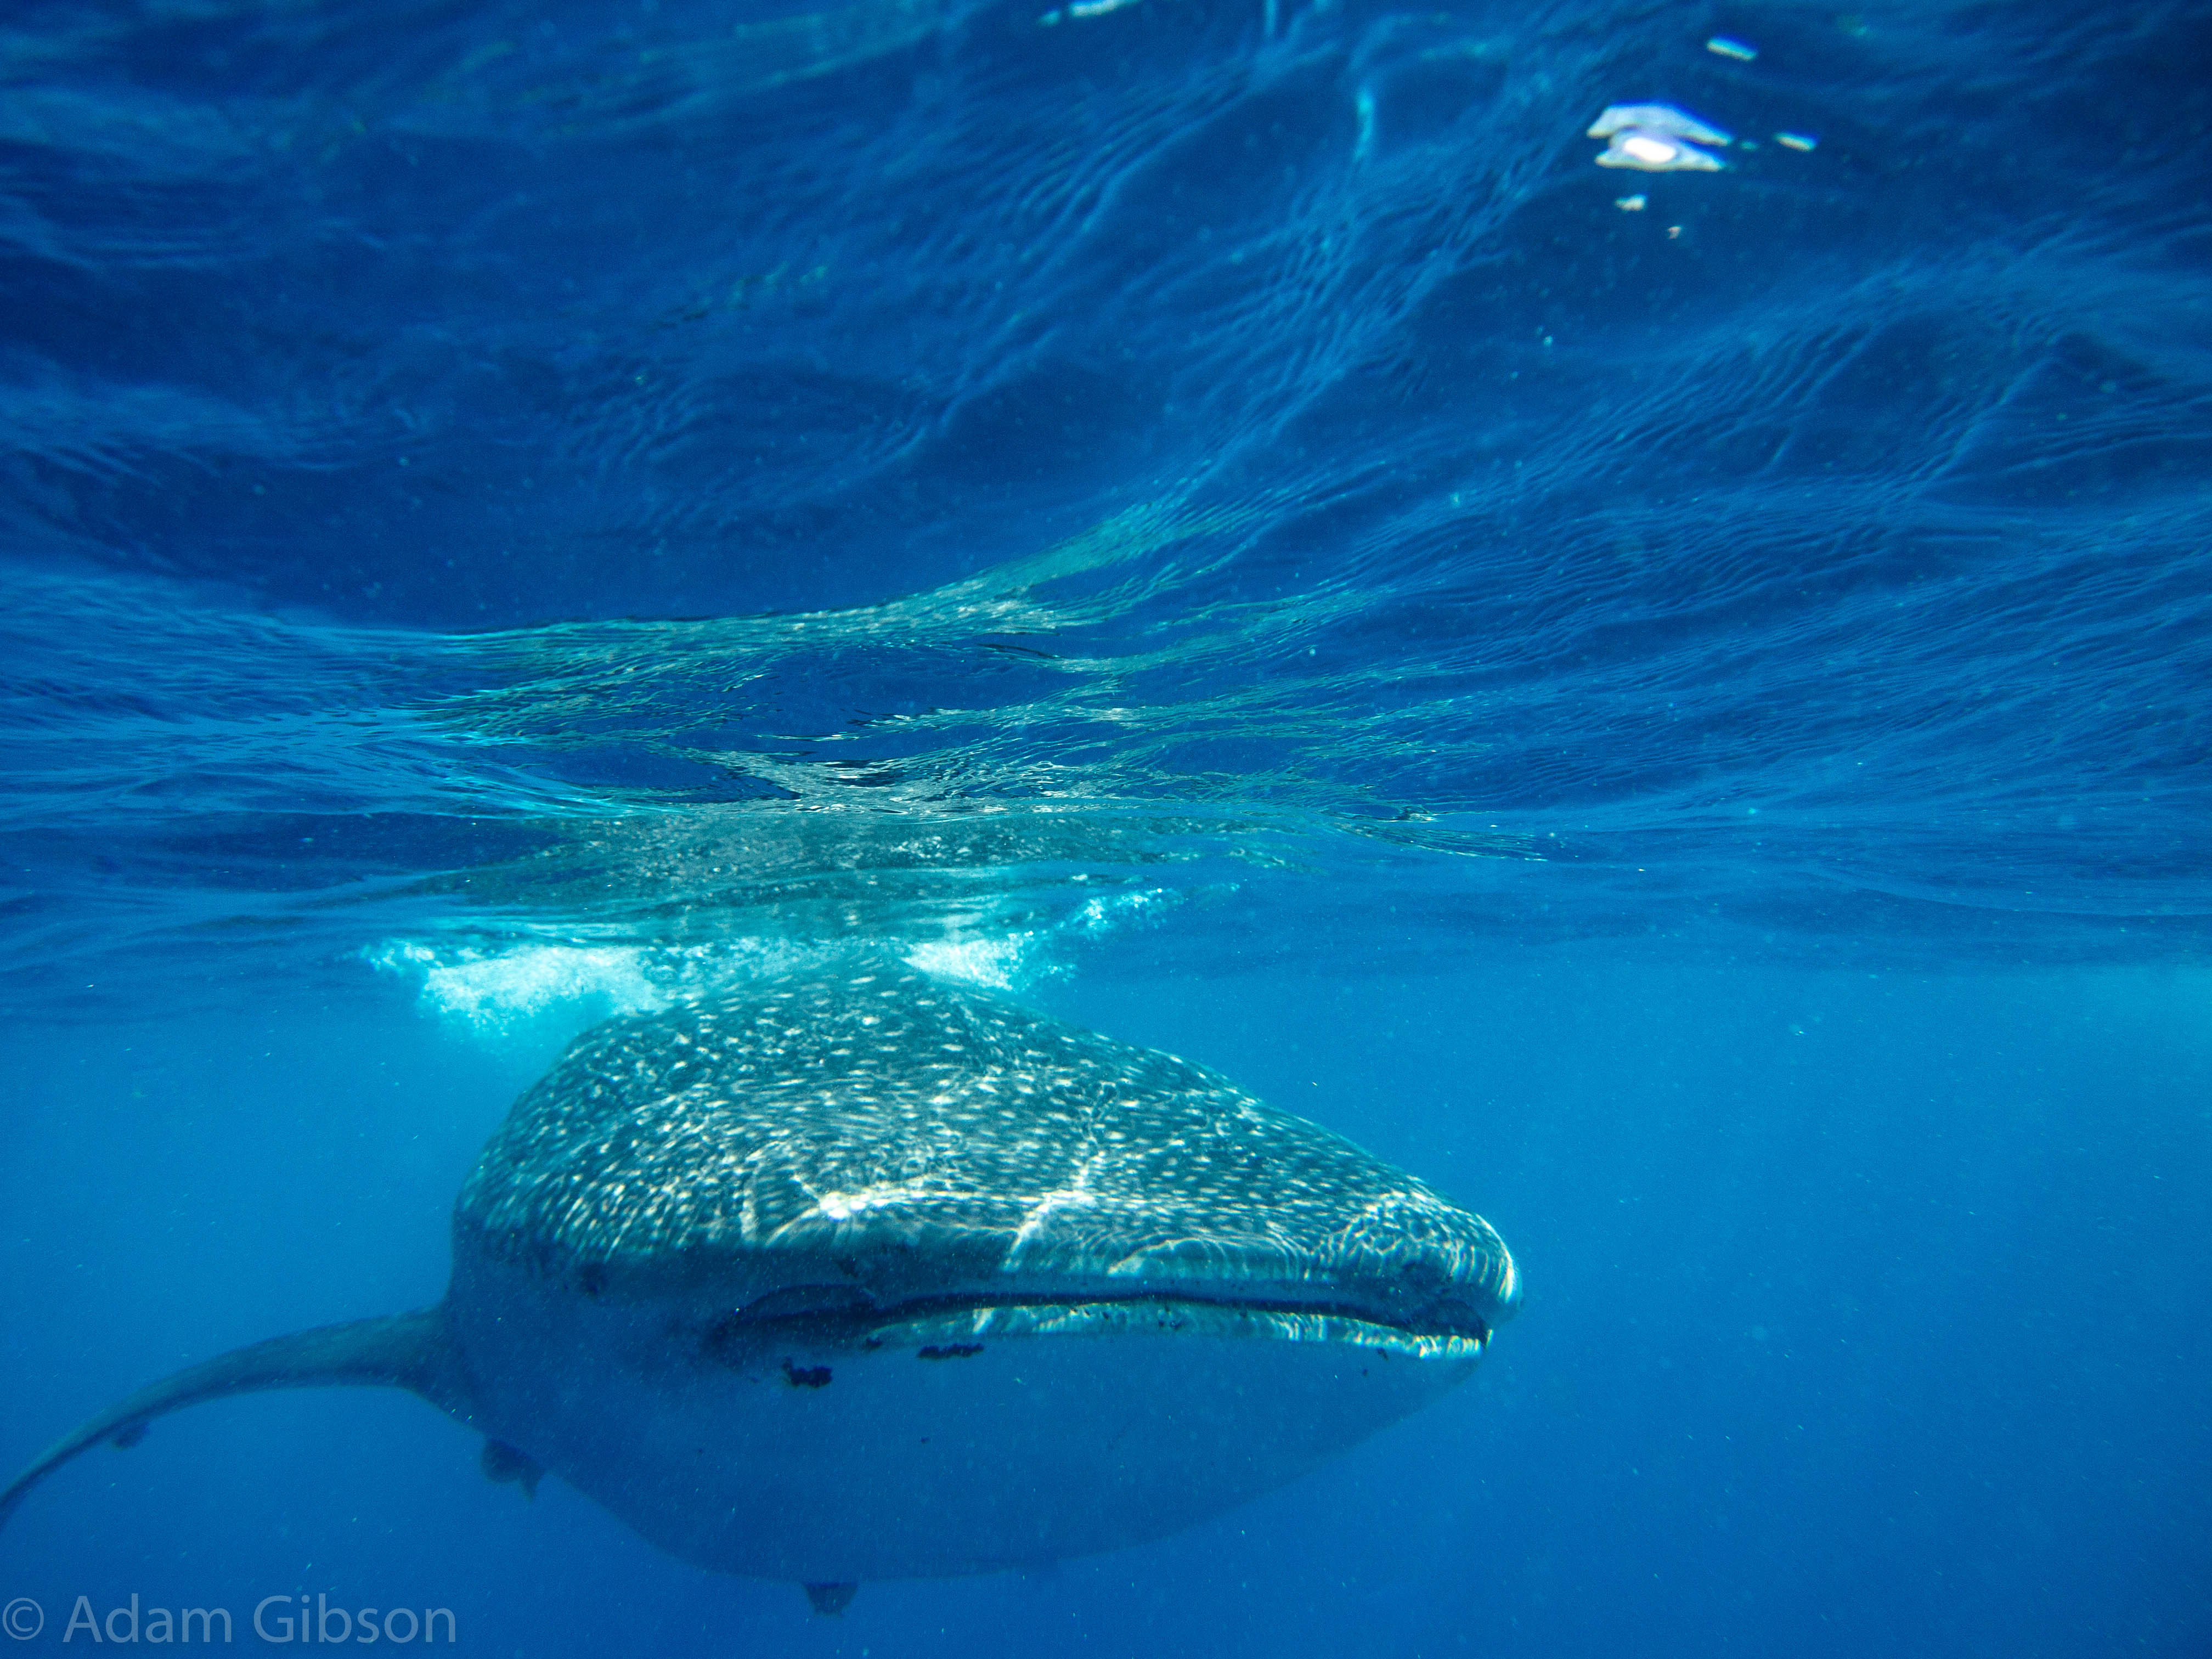 Upclose whale shark diving encounter in Isla Mujeres, Mexico